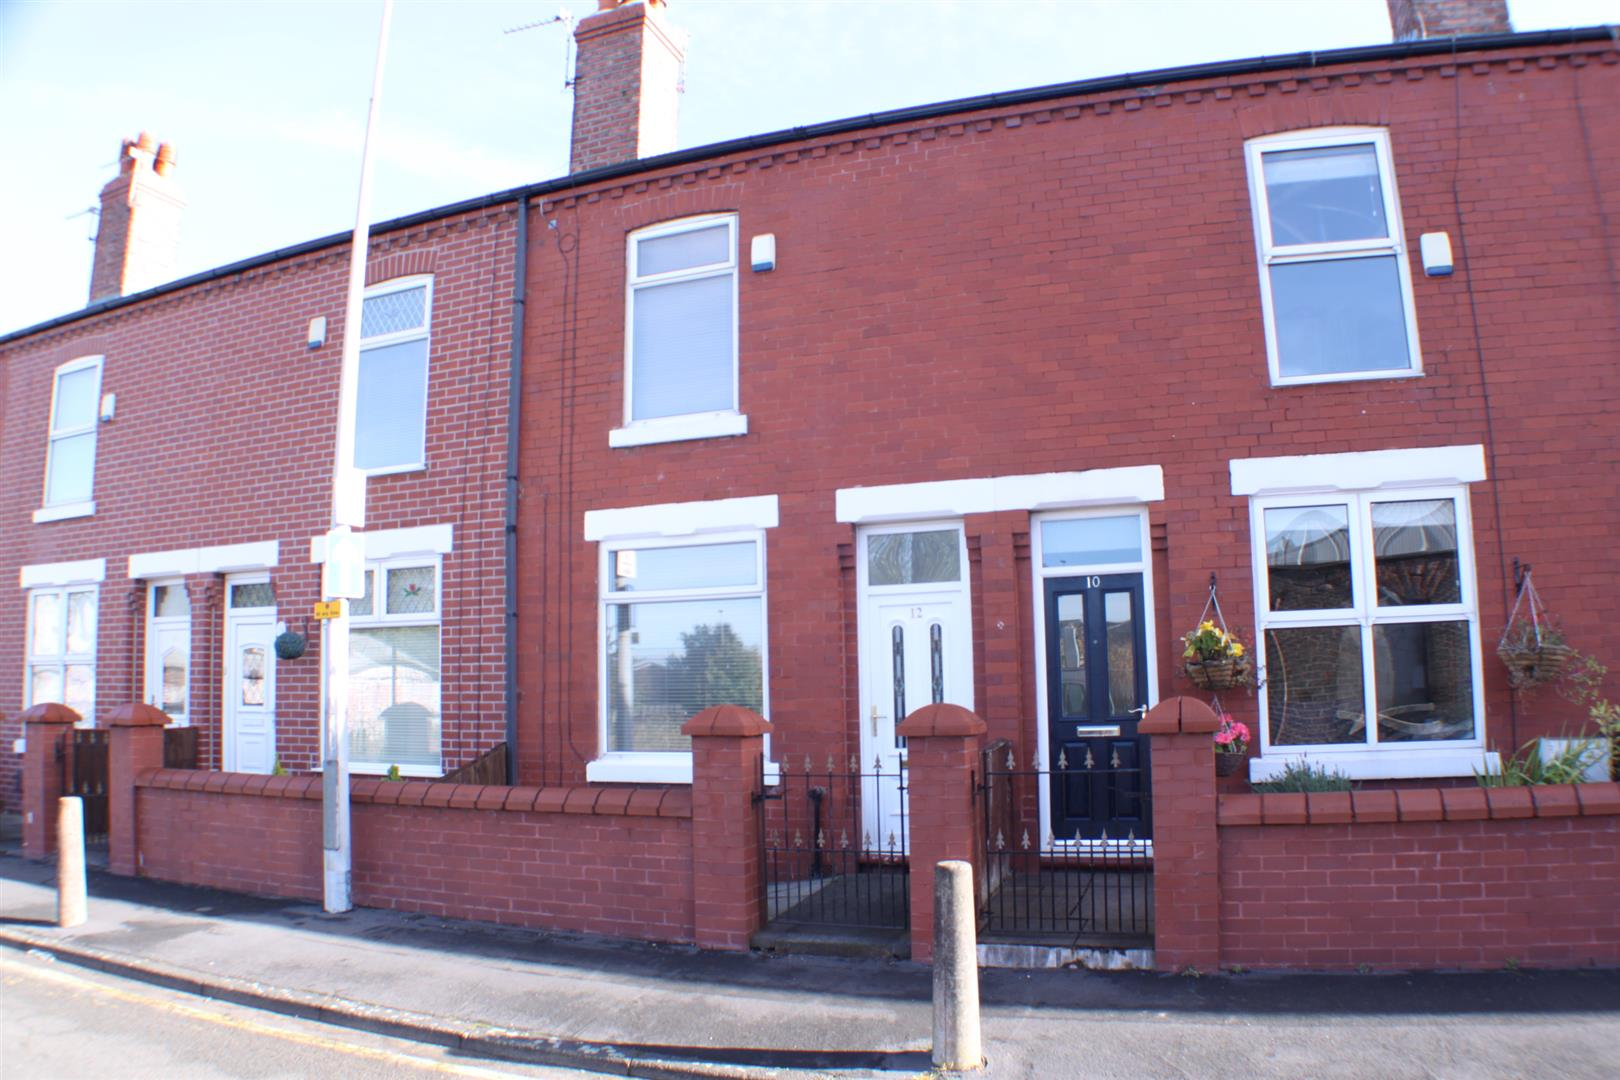 2 Bedrooms Terraced House for sale in Legh Street, Eccles, Manchester